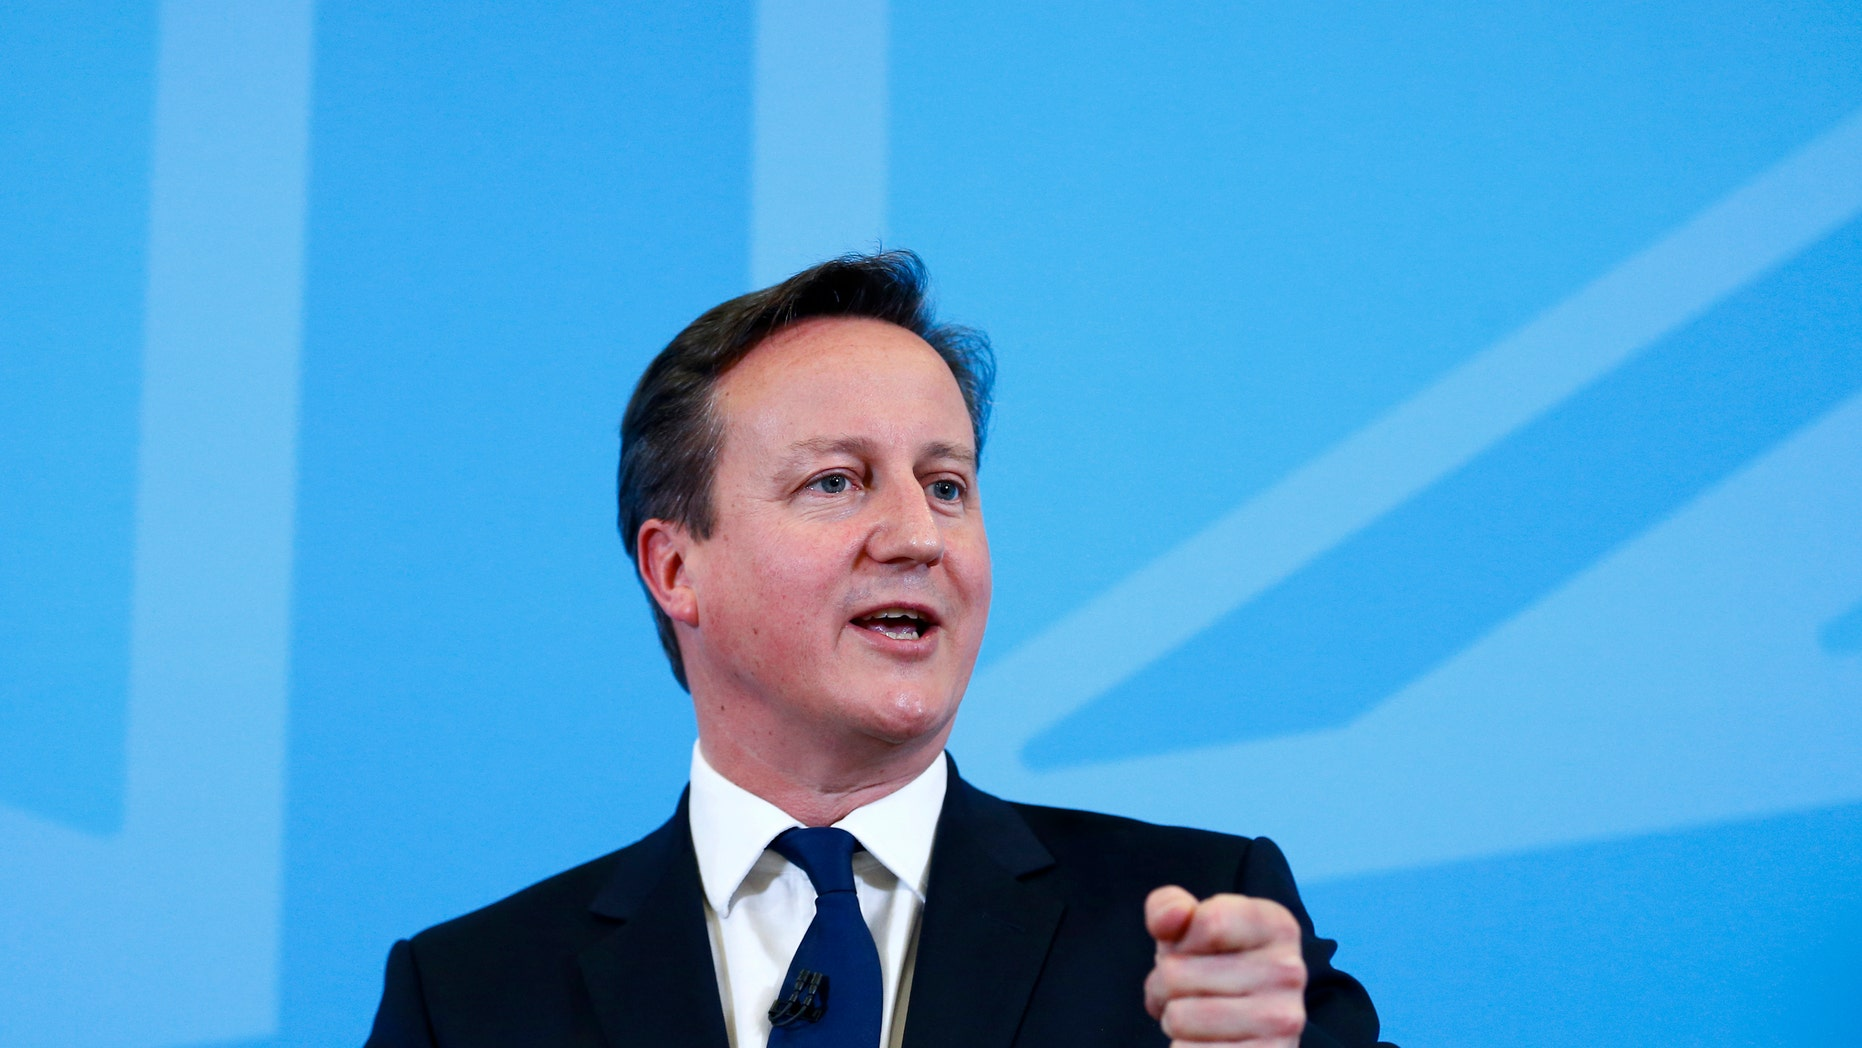 David Cameron speaks on the economy to an audience at a school in Poole, southern England, Dec. 15, 2014.